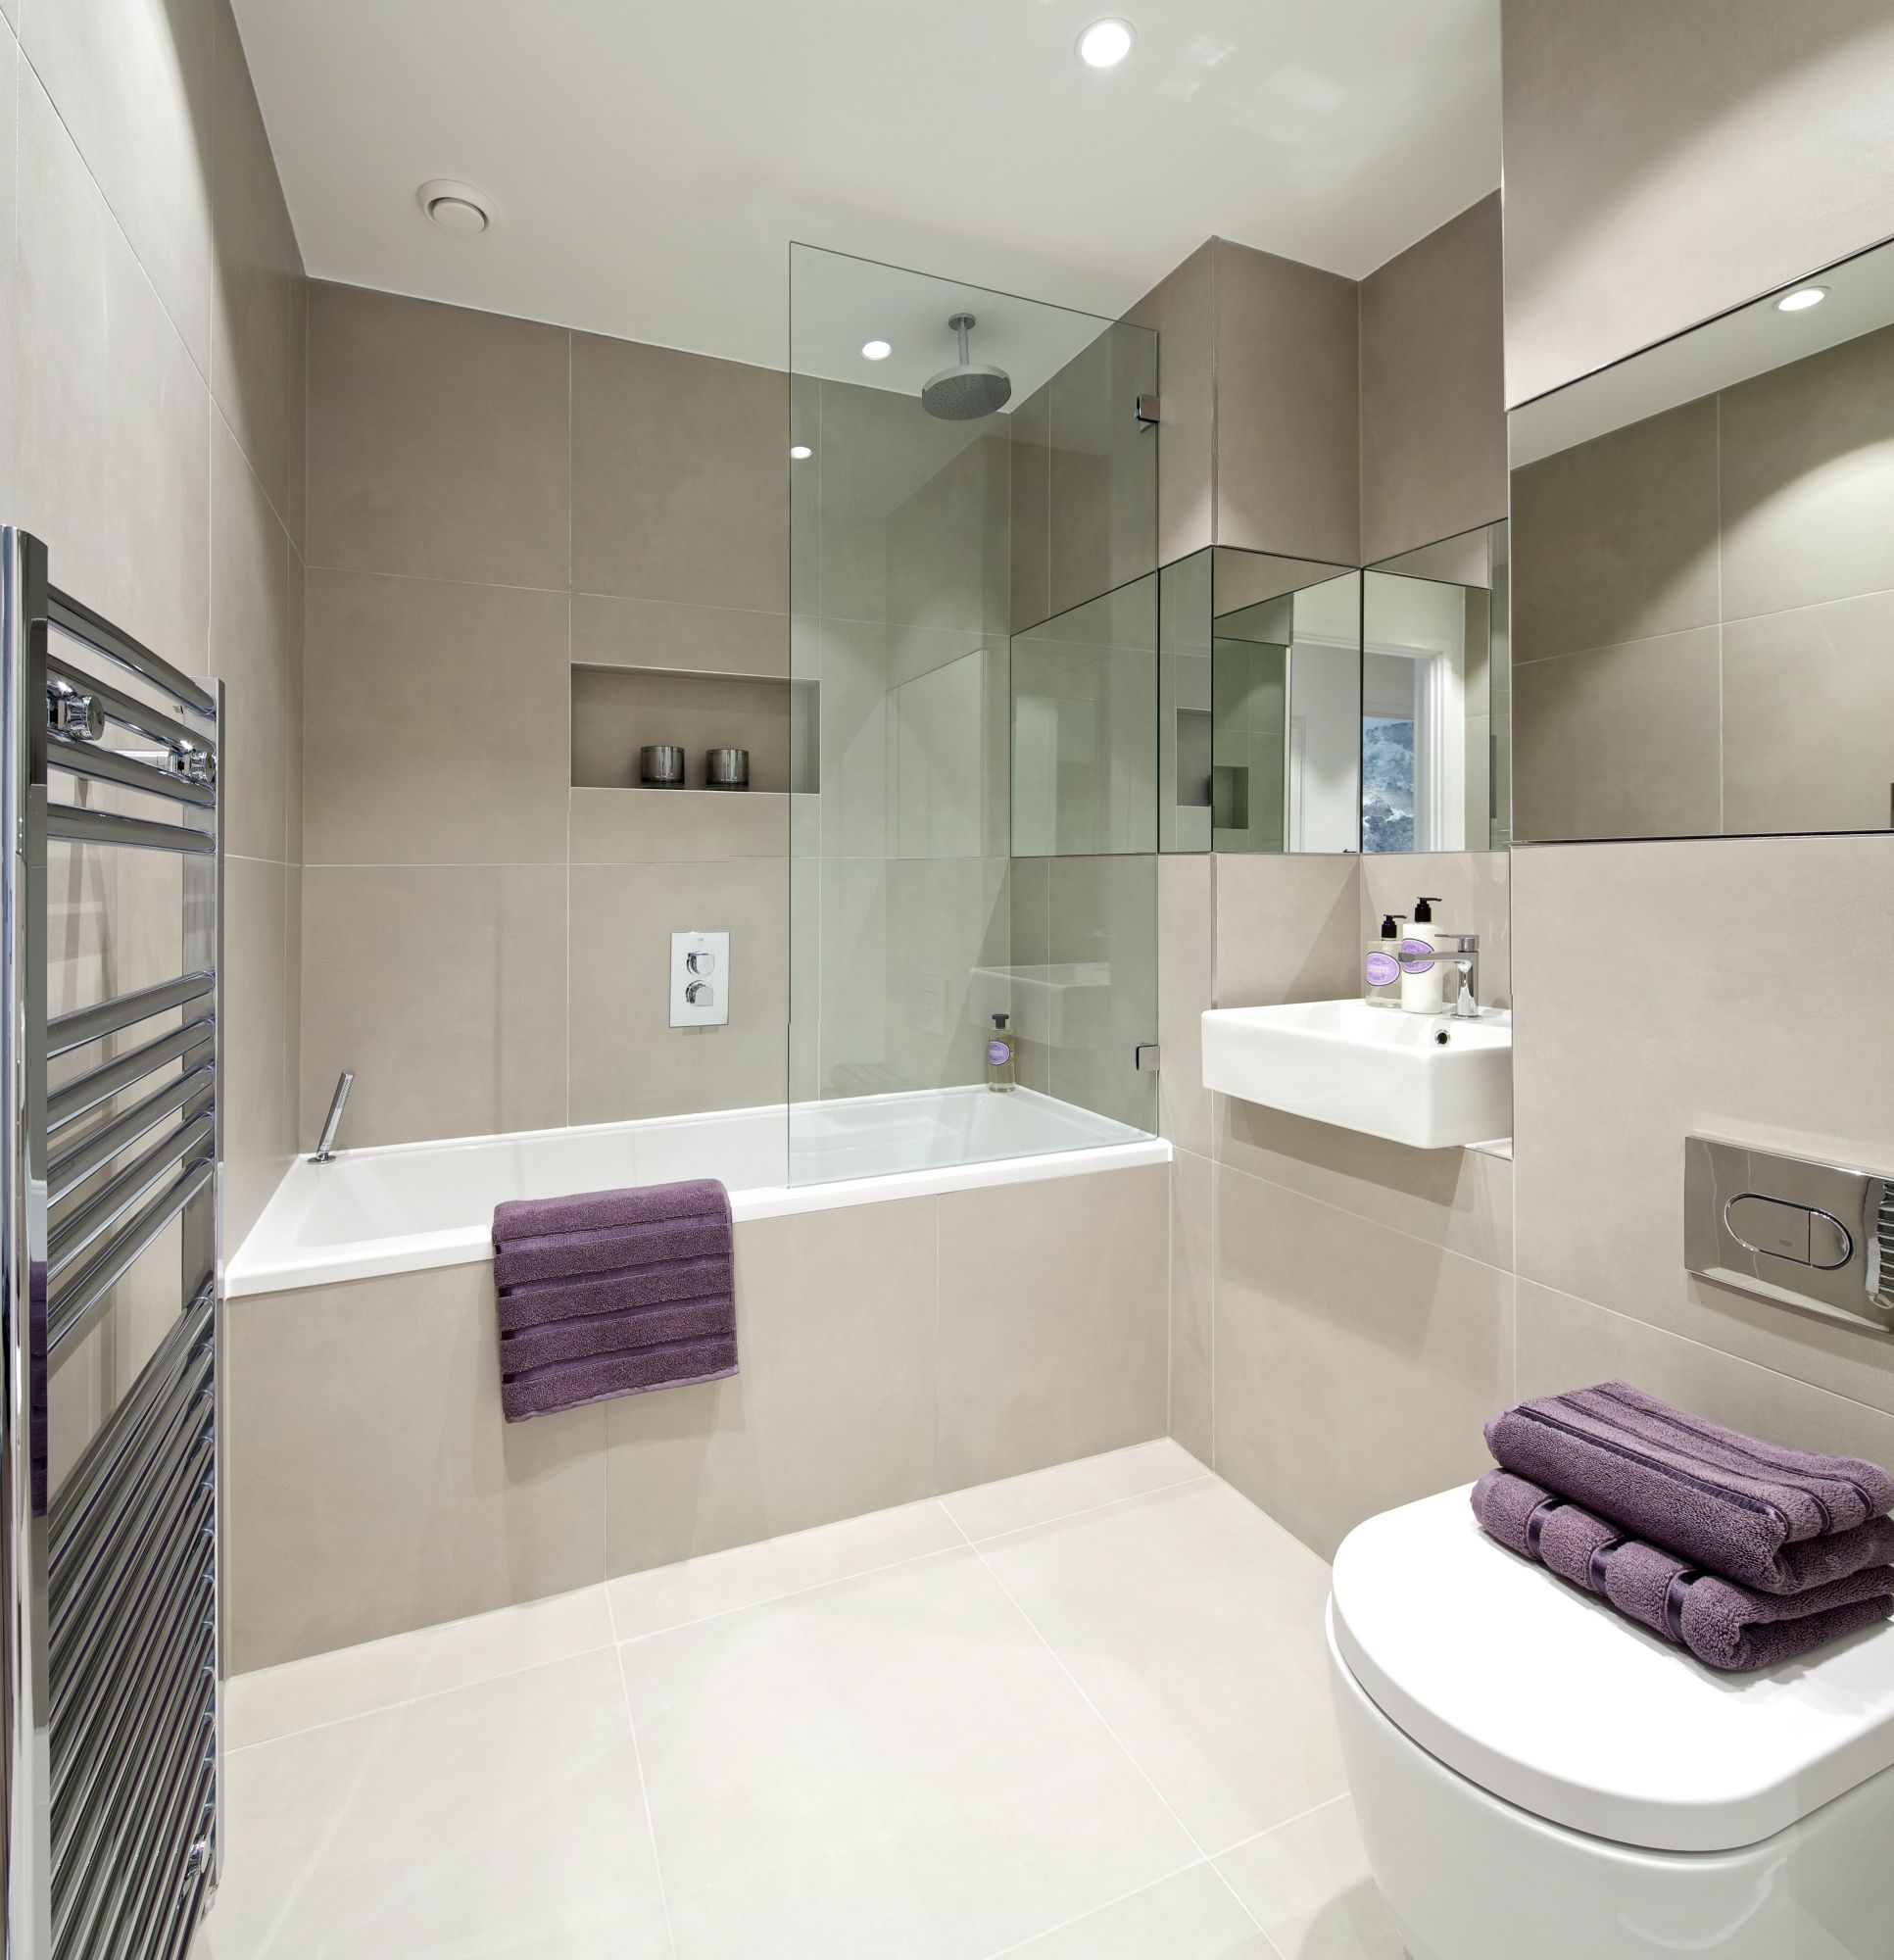 stunning home interiors | Bathroom : Another Stunning Show ...